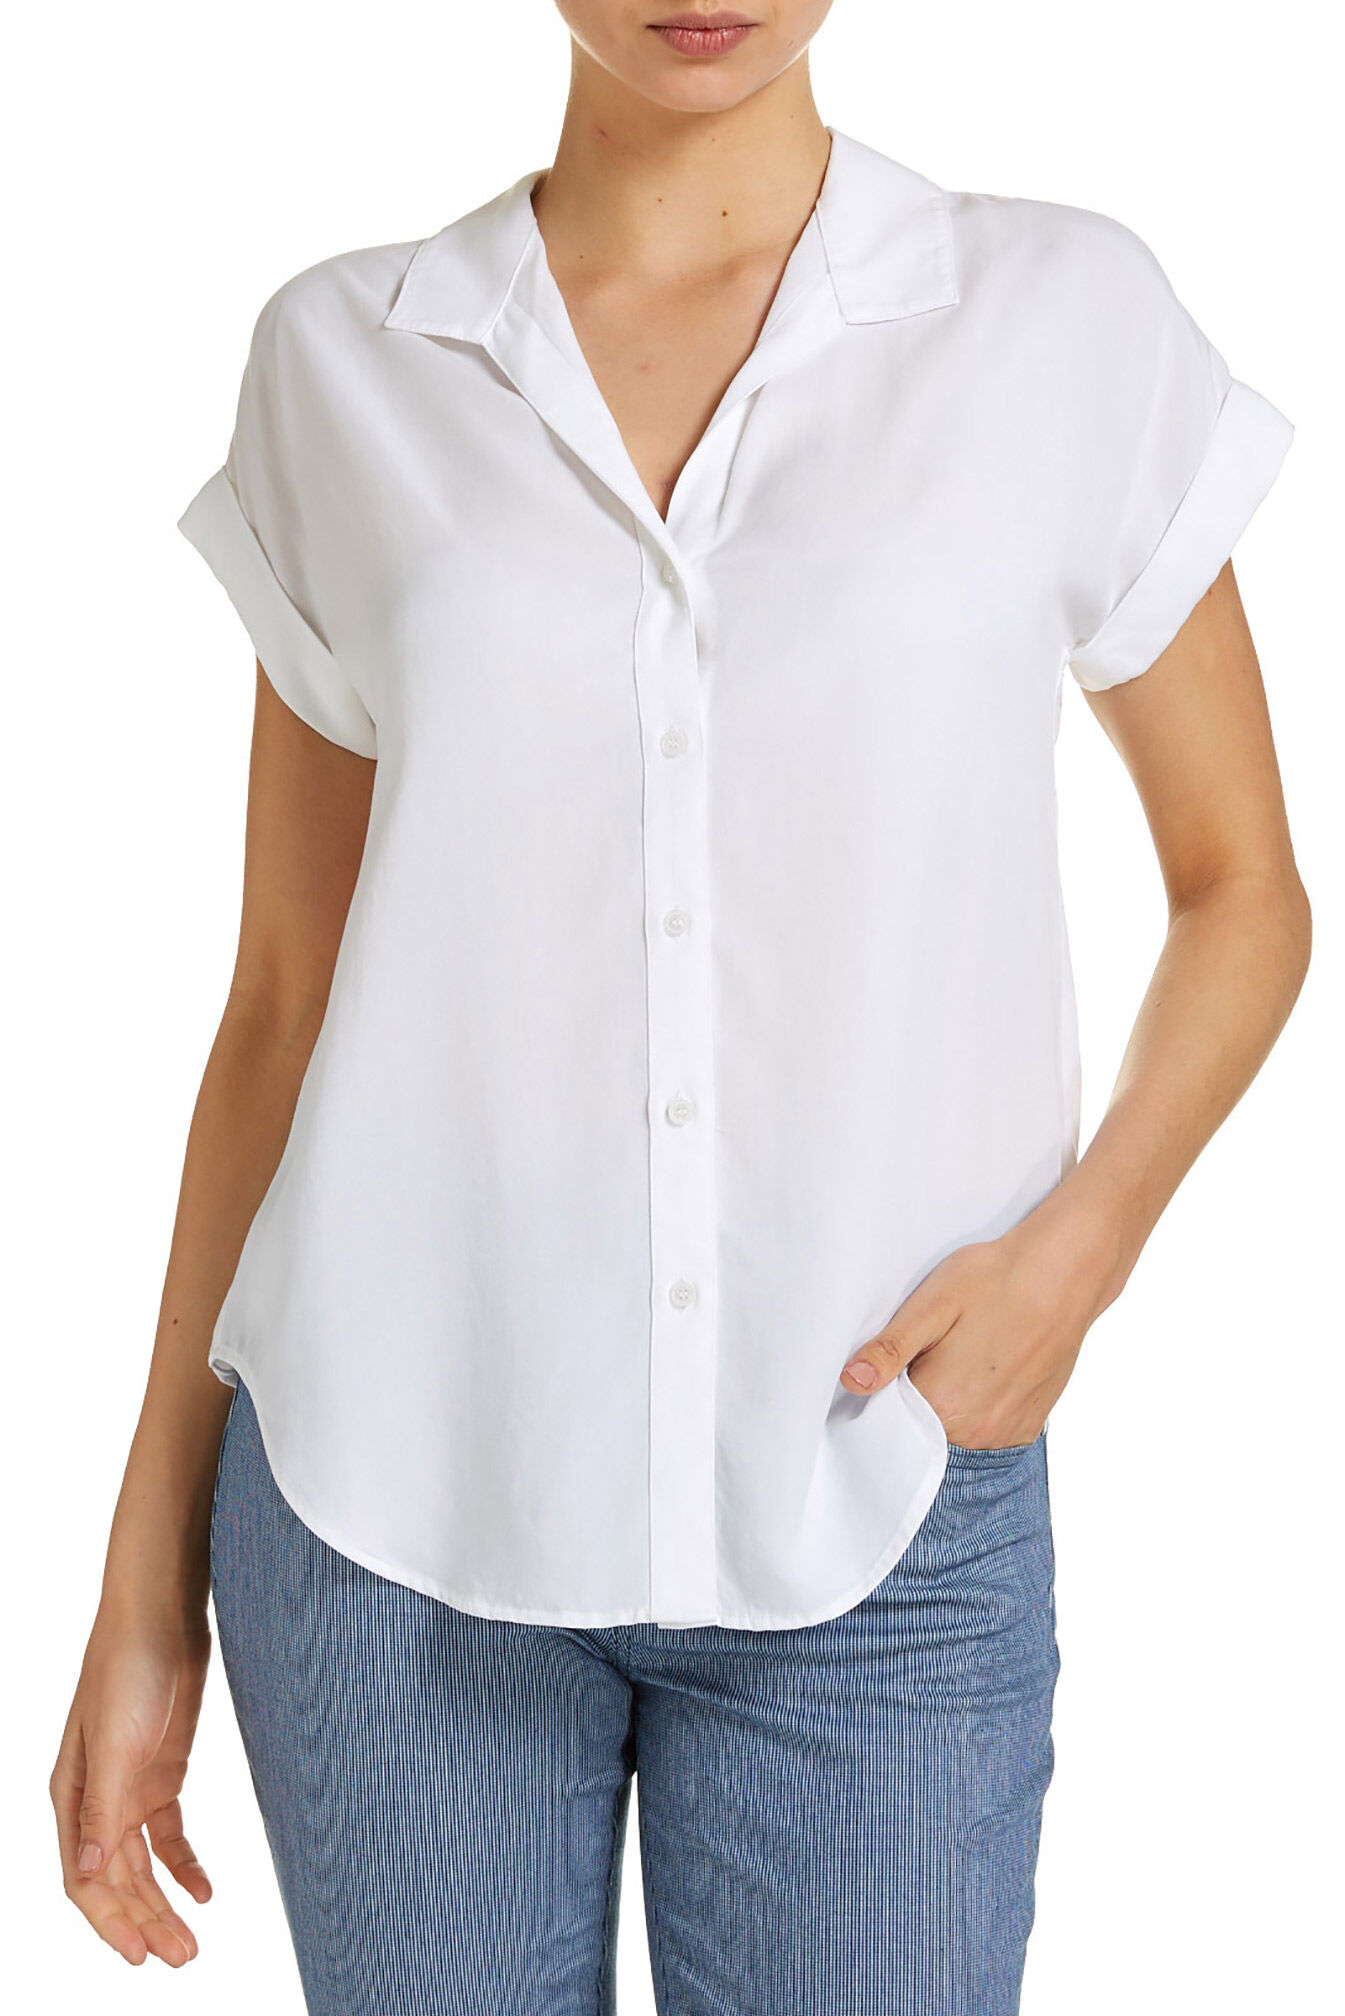 new sportscraft womens tilly tencel shirt tops blouses